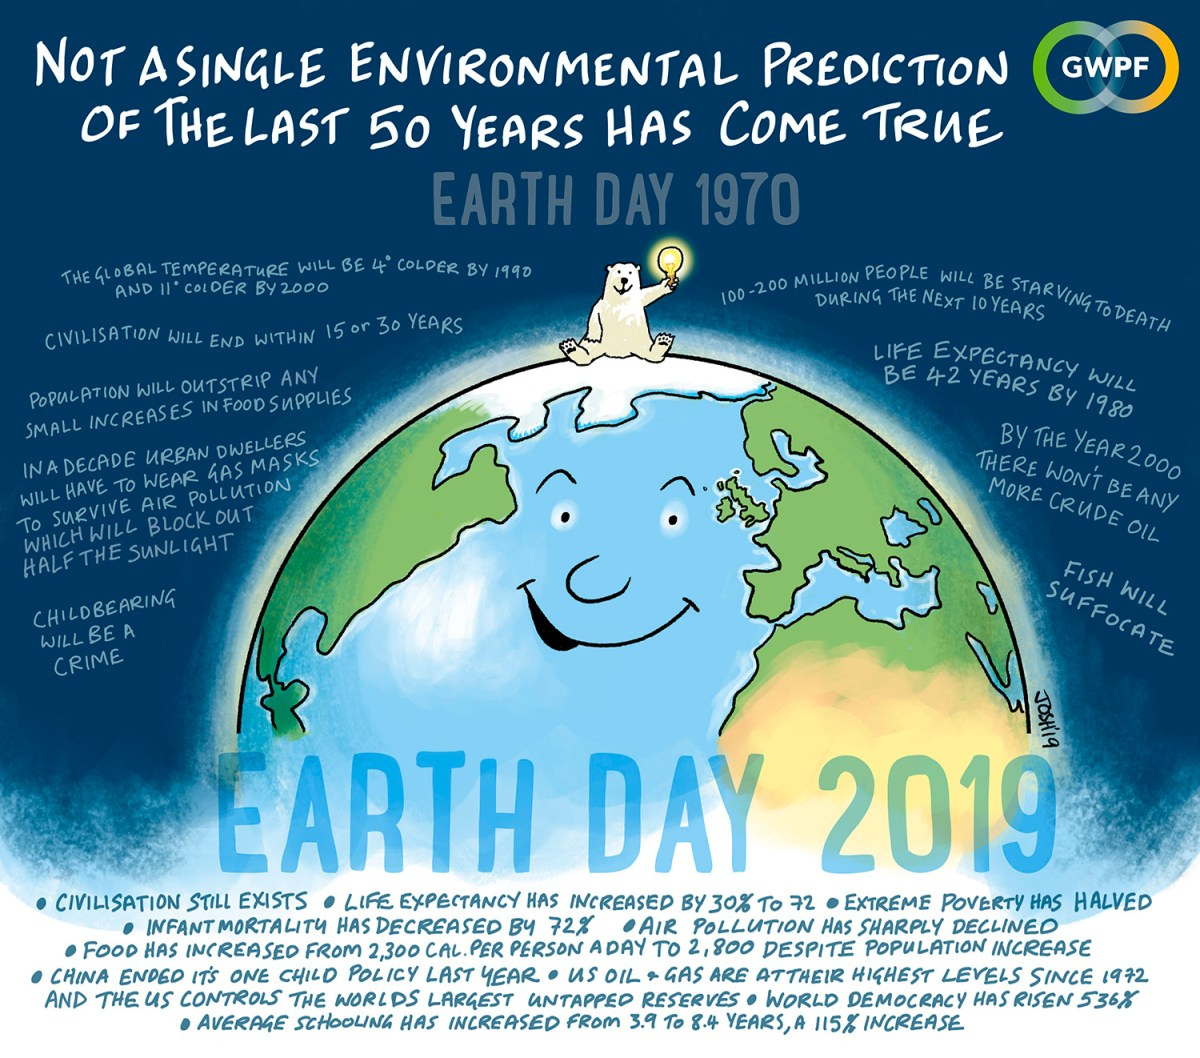 Earth Day: Not a Single Environmental Prediction of the Last